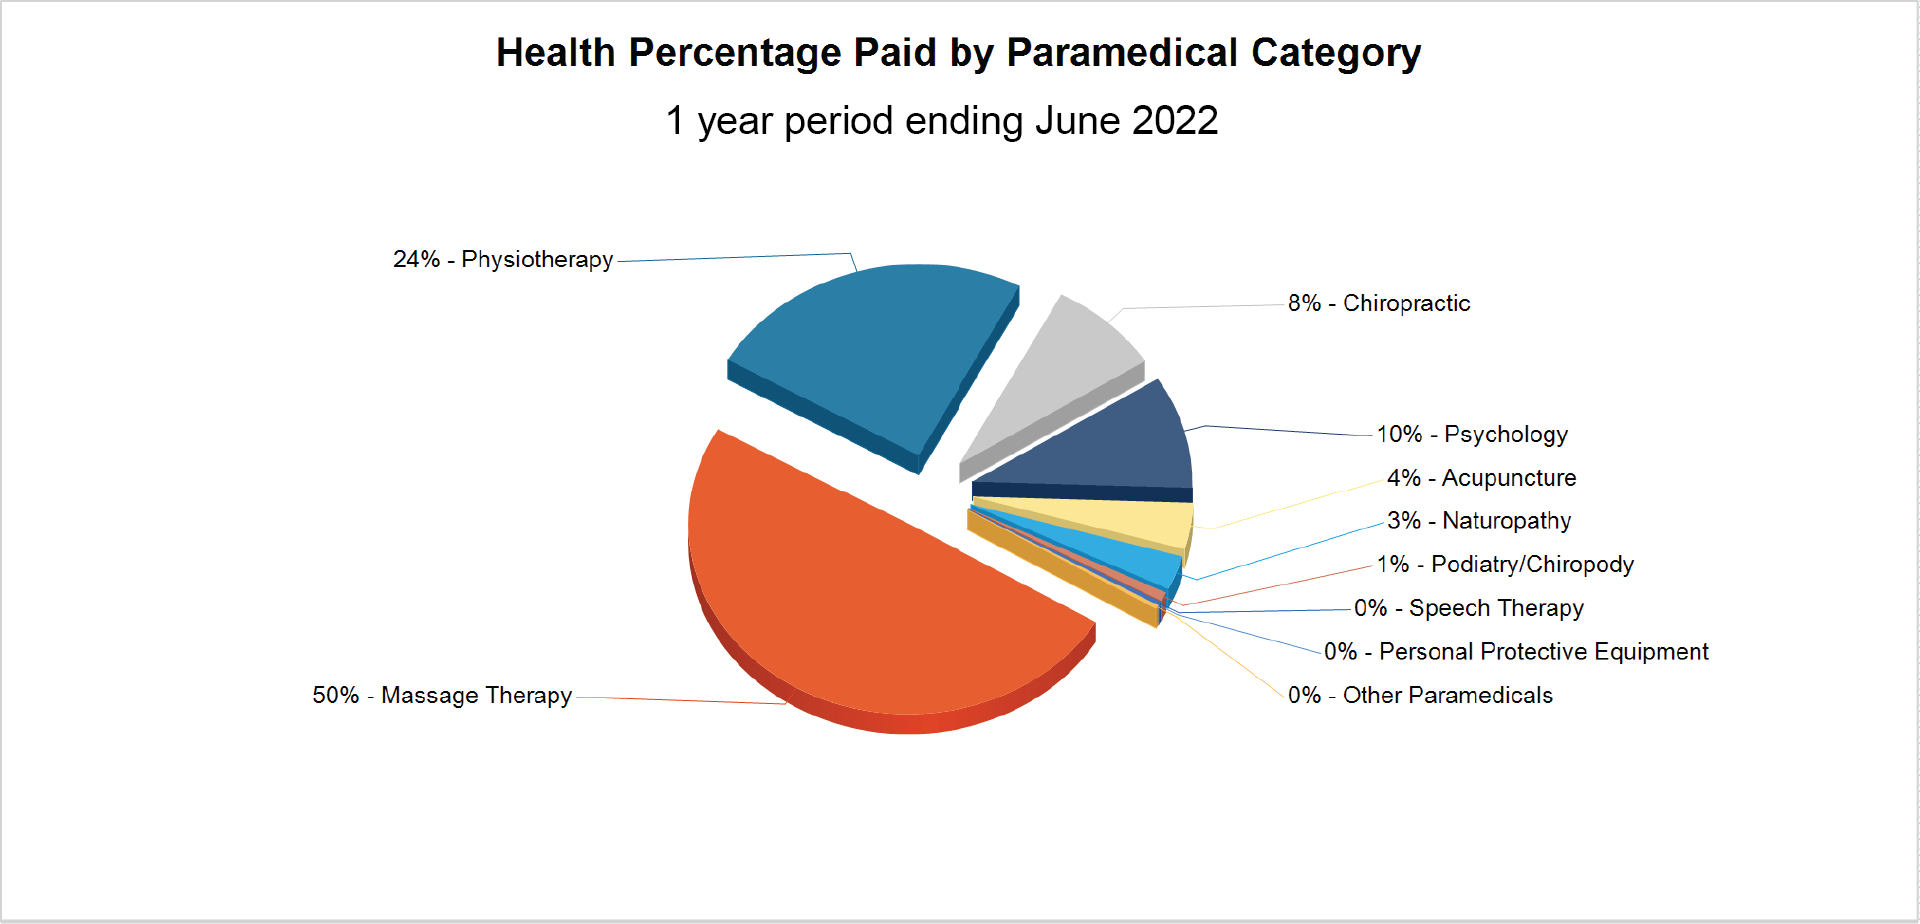 Health Percentage Paid By Paramedical Category